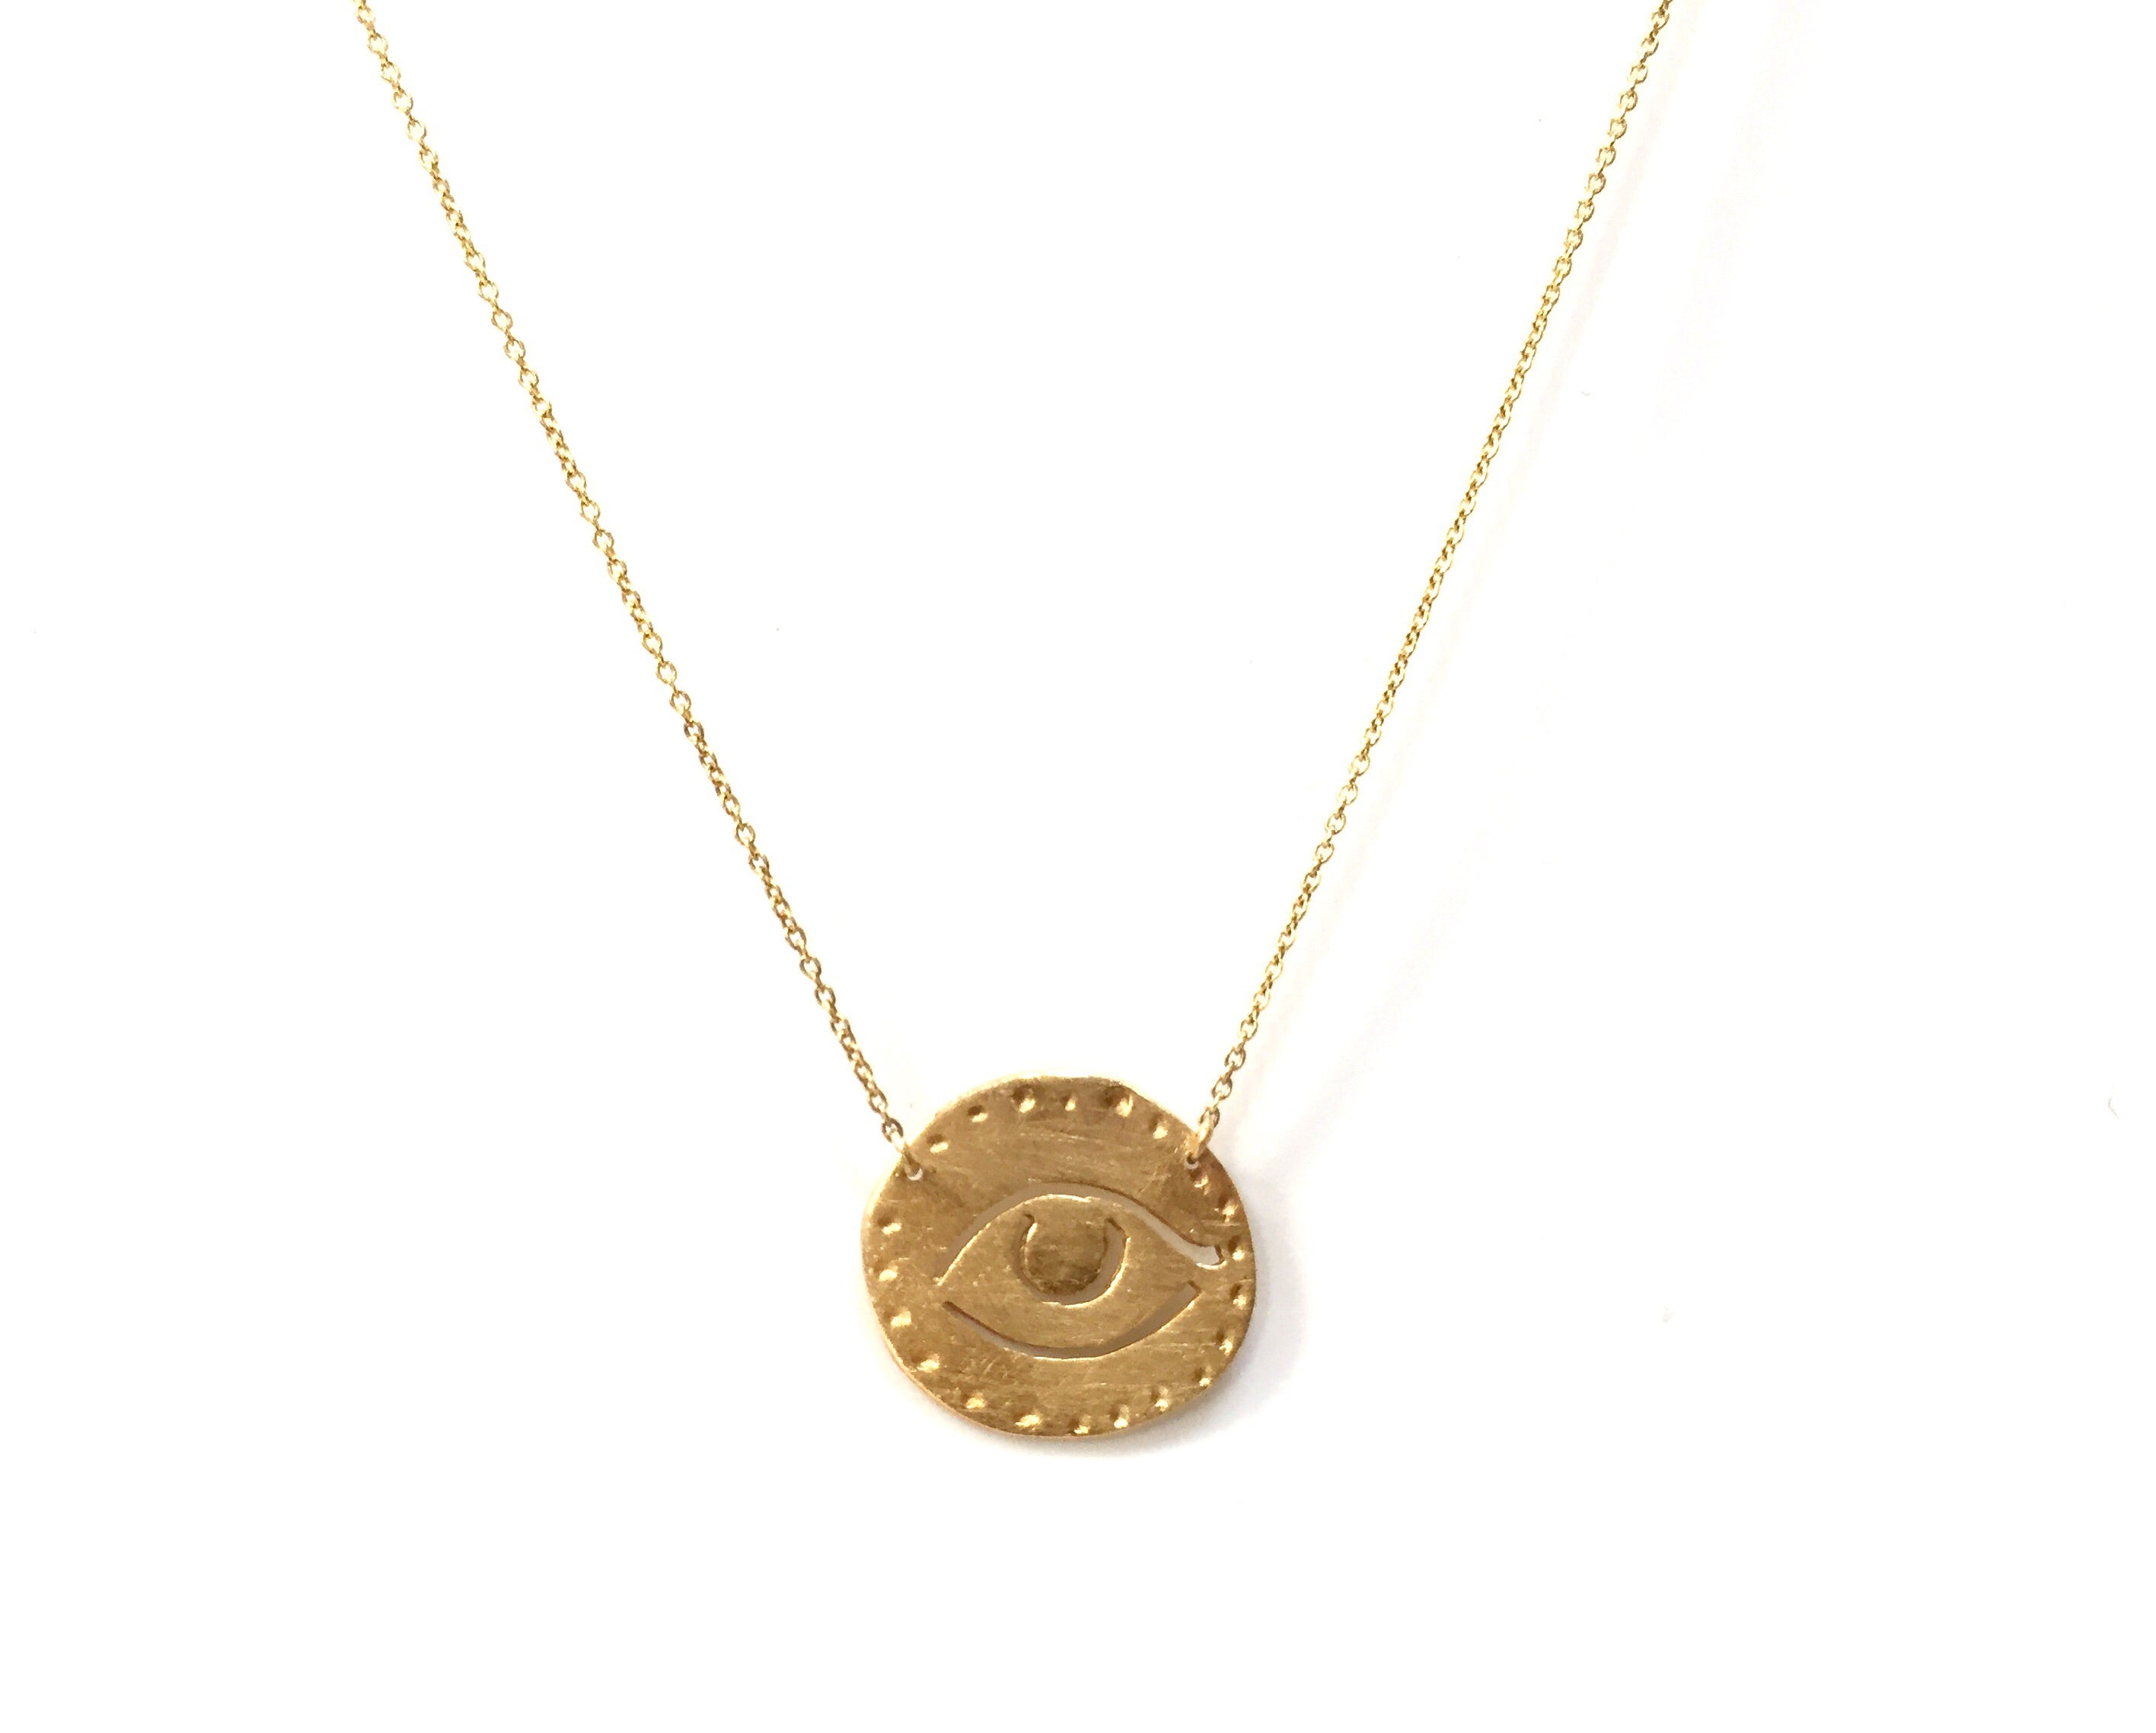 ca036b743b33 14K GOLD NECKLACE WITH EVIL EYE CHARM - EYE OF THE SEA